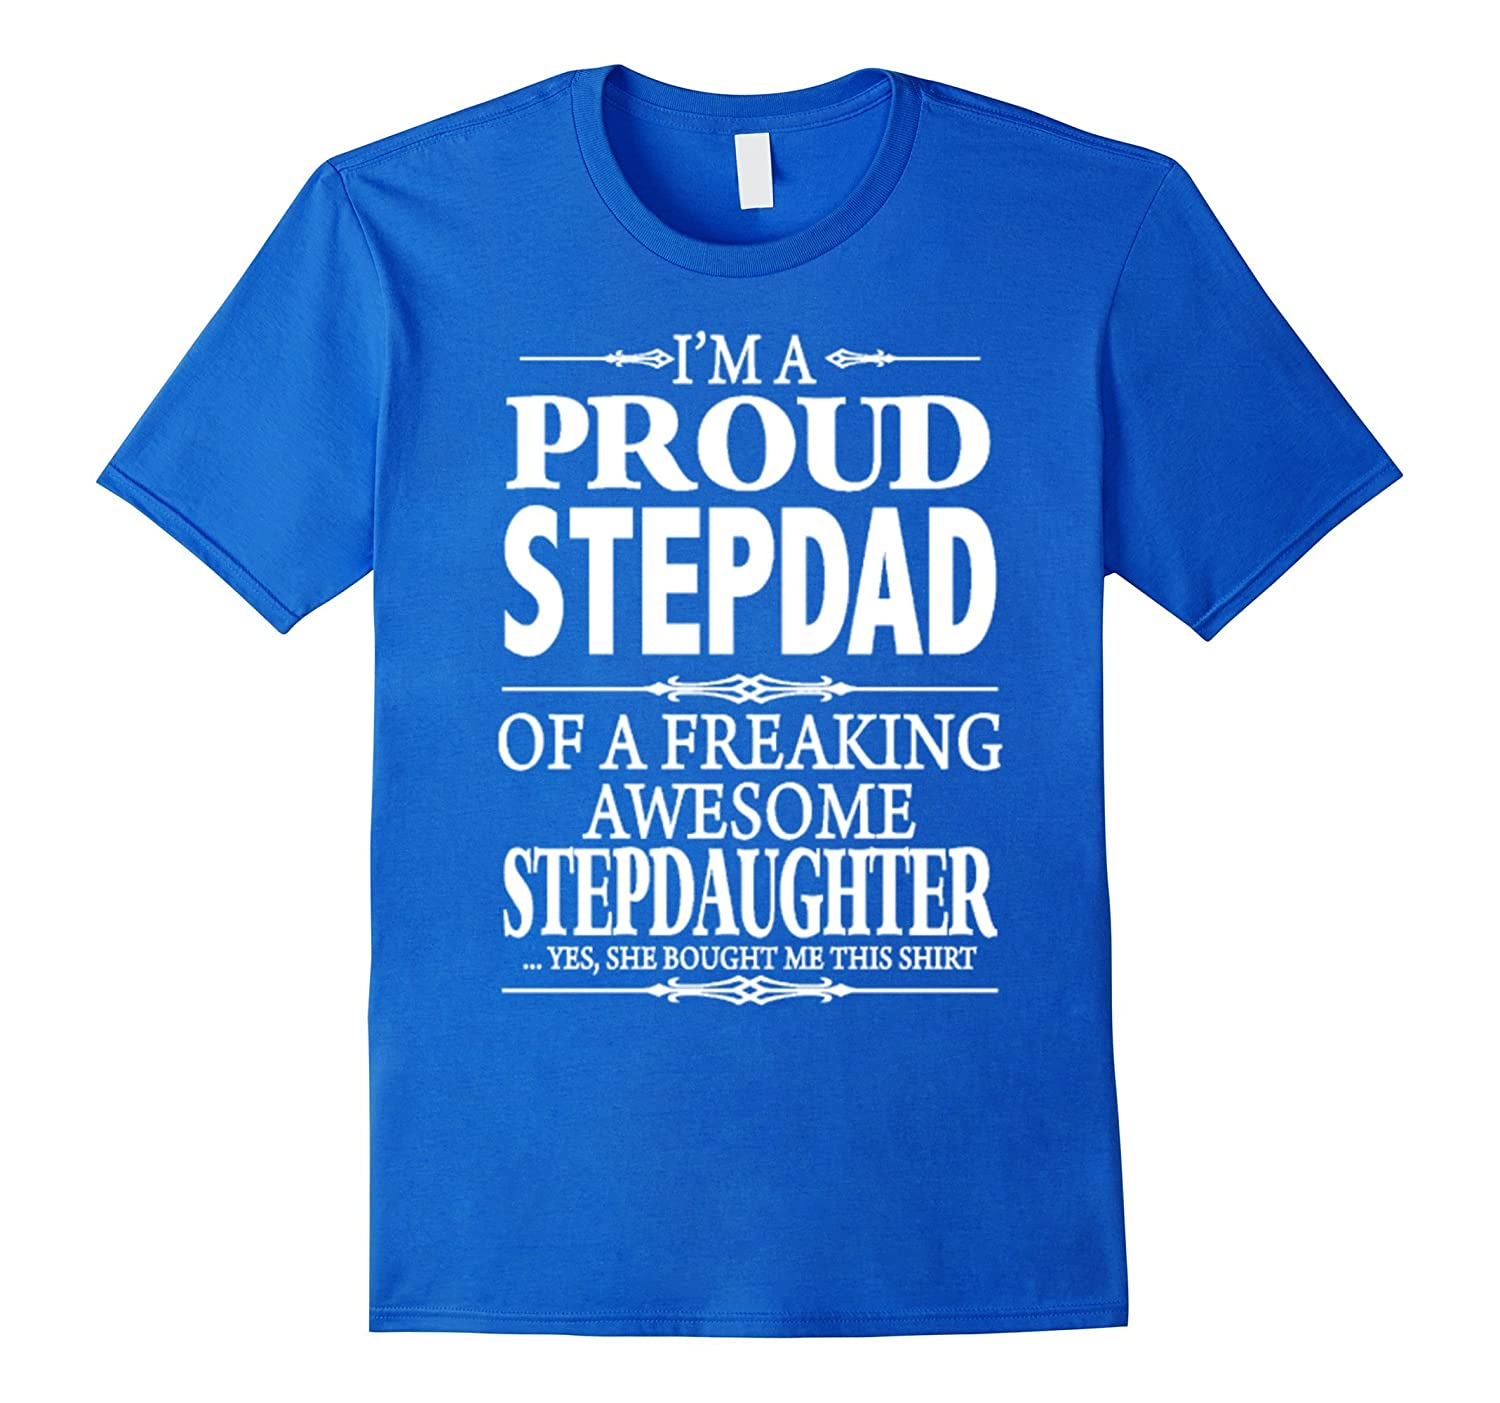 Proud Stepdad T Shirt Awesome Stepdaughter T Shirt-RT